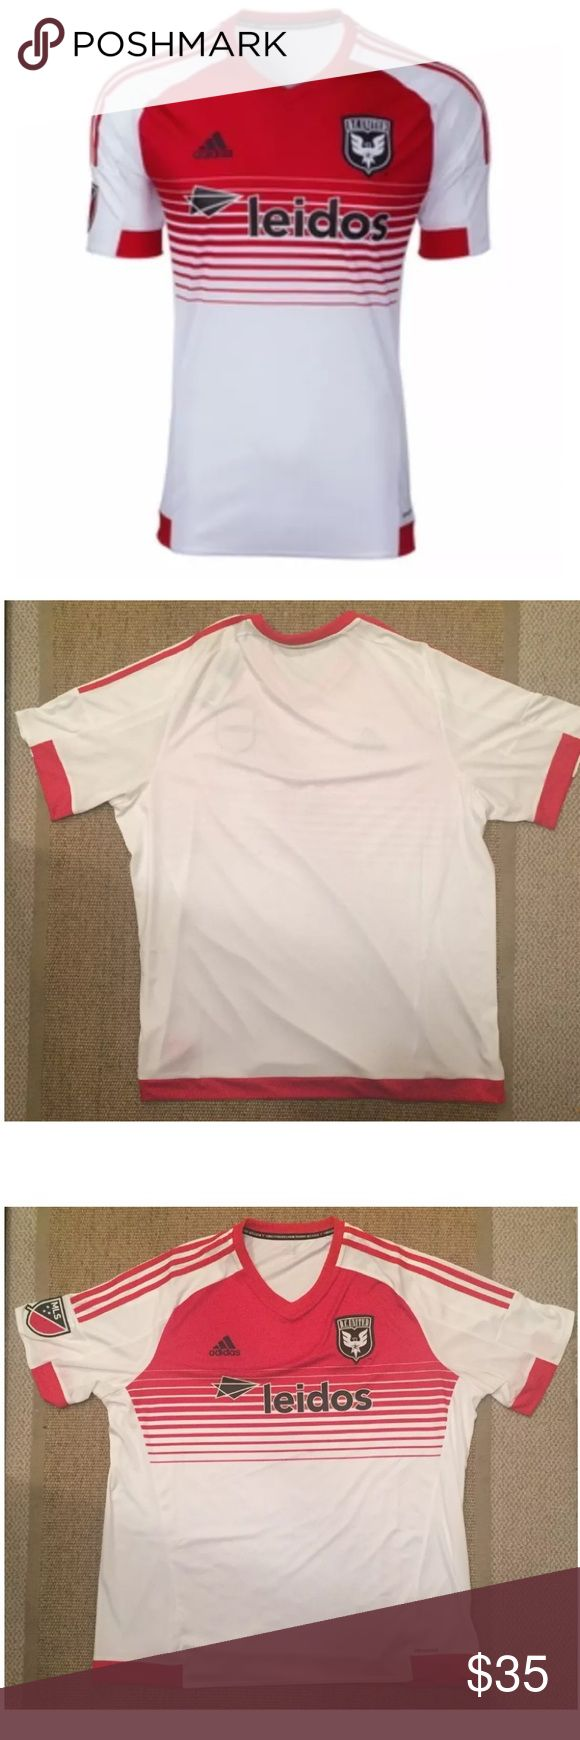 adidas DC United Leidos 2015 Away Jersey XXL adidas DC United Leidos 2015 Away Stadium Jersey (Red/White) Men's Size 2XL  